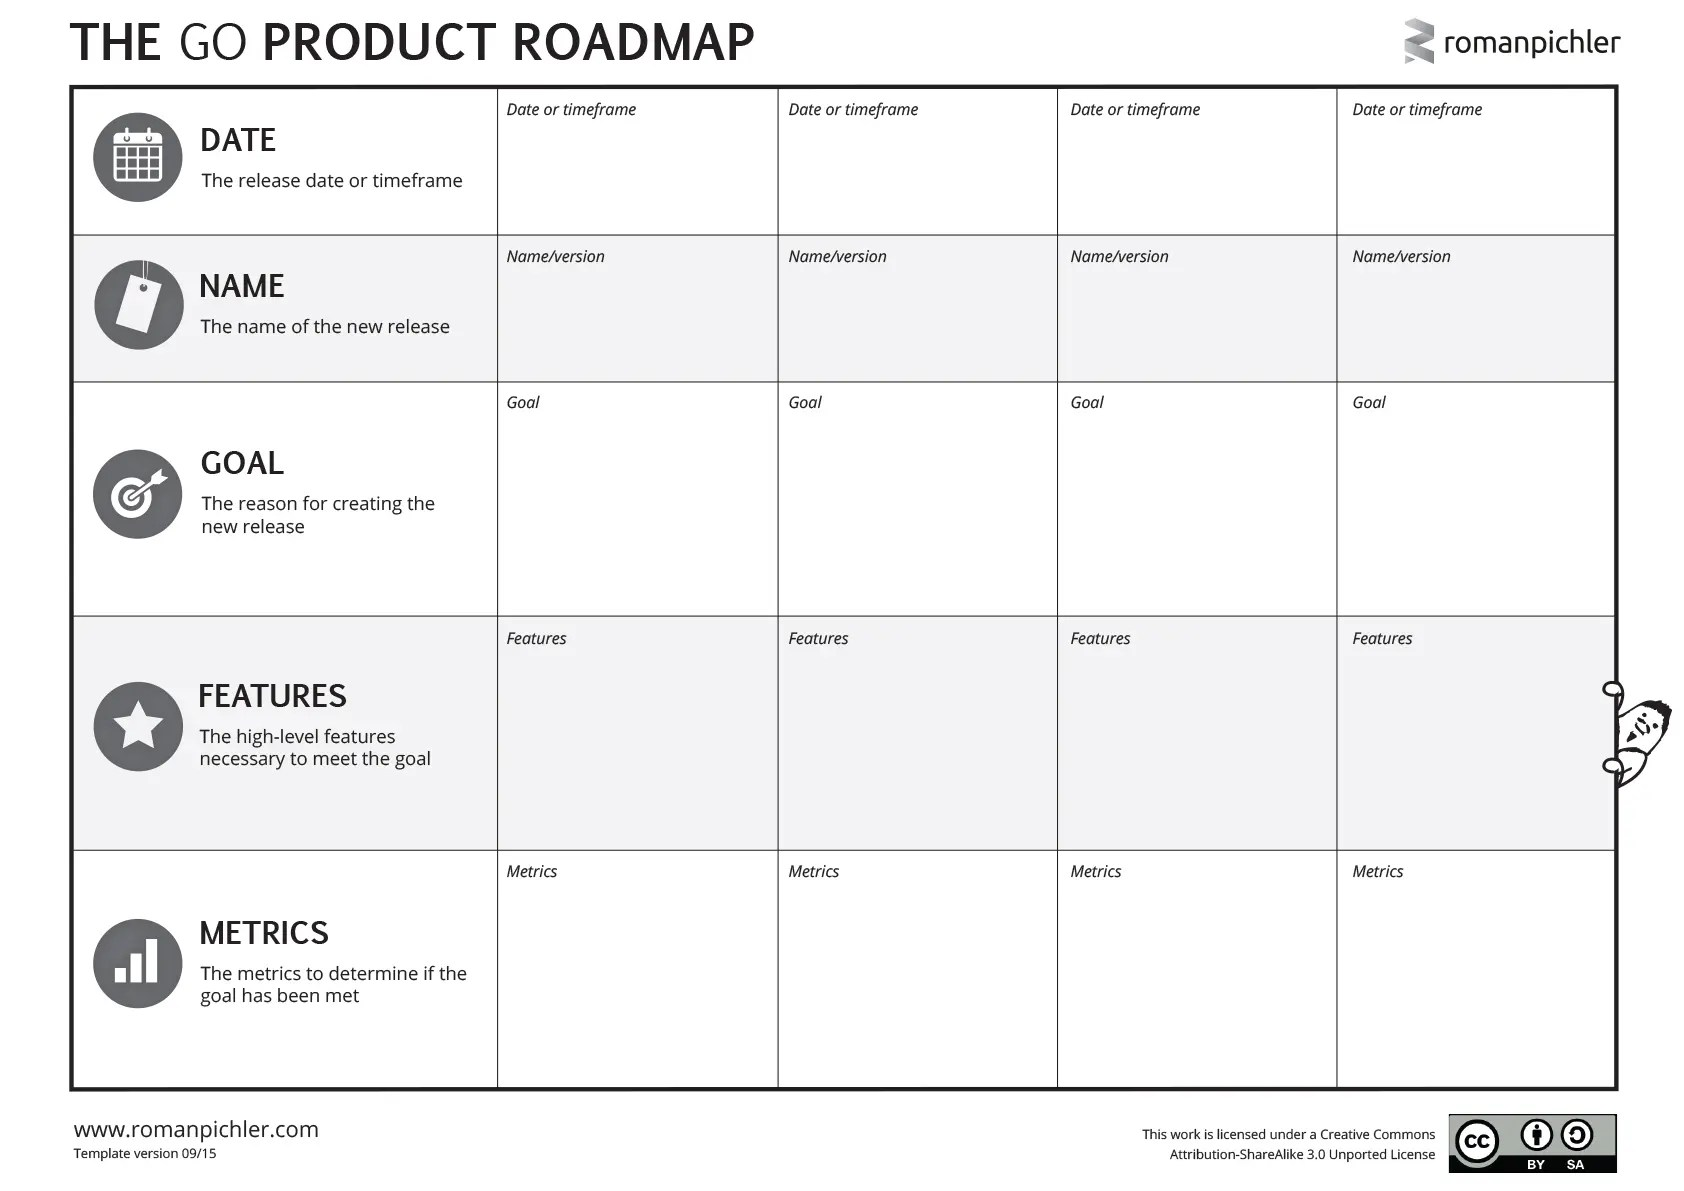 Go Product Roadmap Download